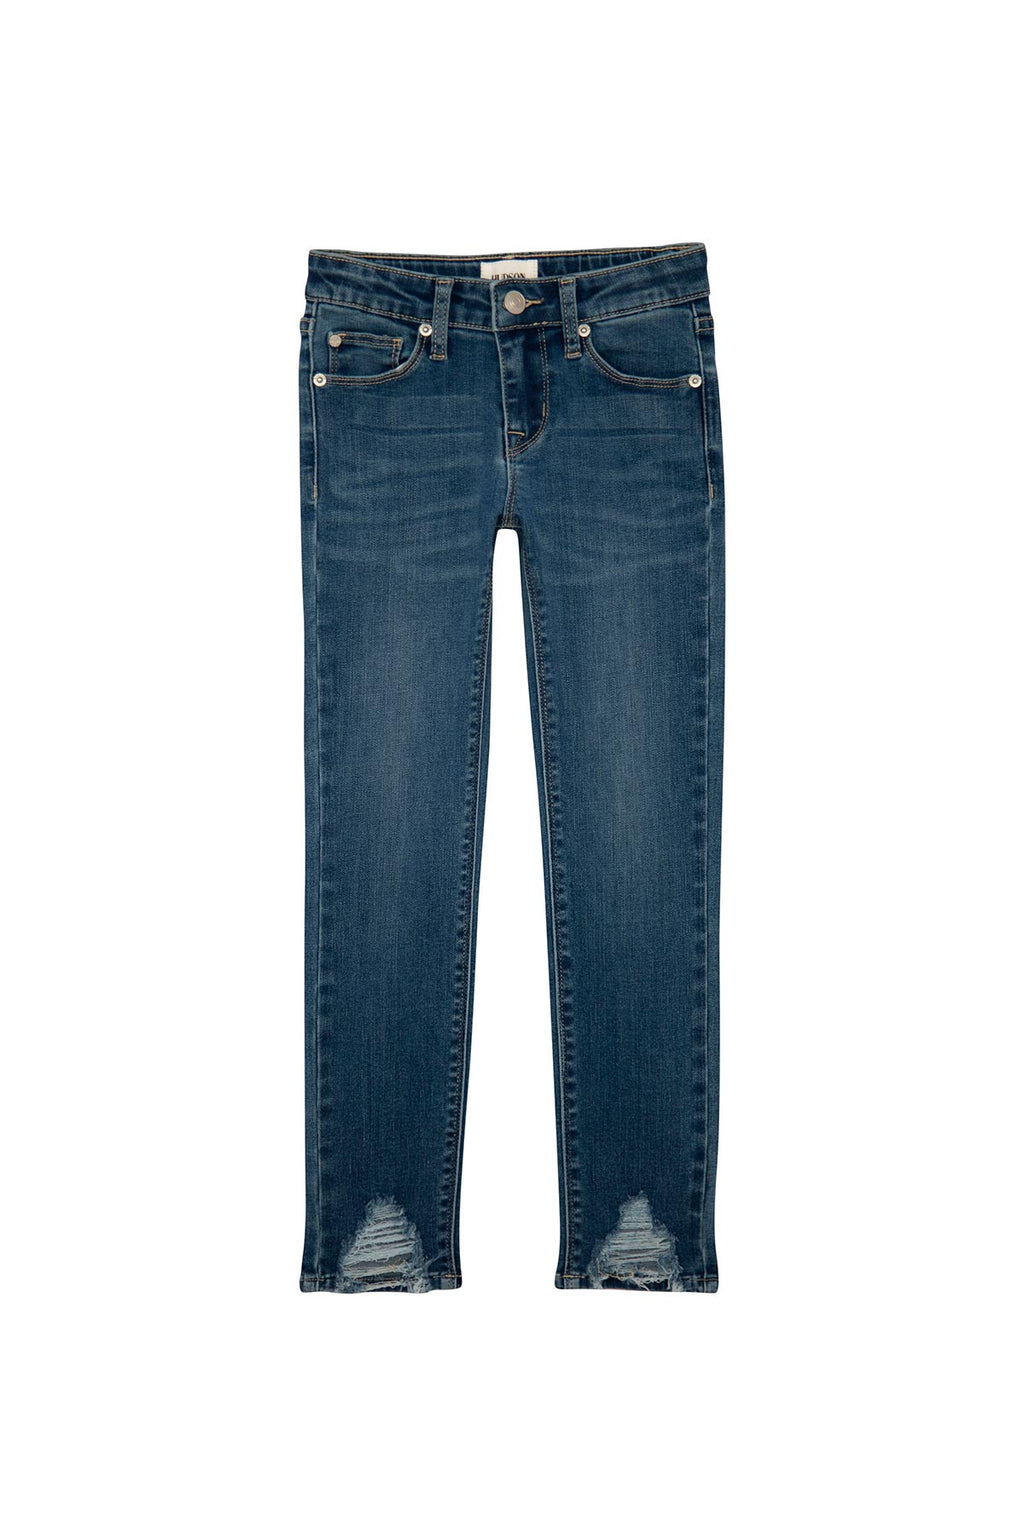 GIRLS ASAMI CROP JEAN, SIZES 7-16 - VINTAGE LOVE - Image 1